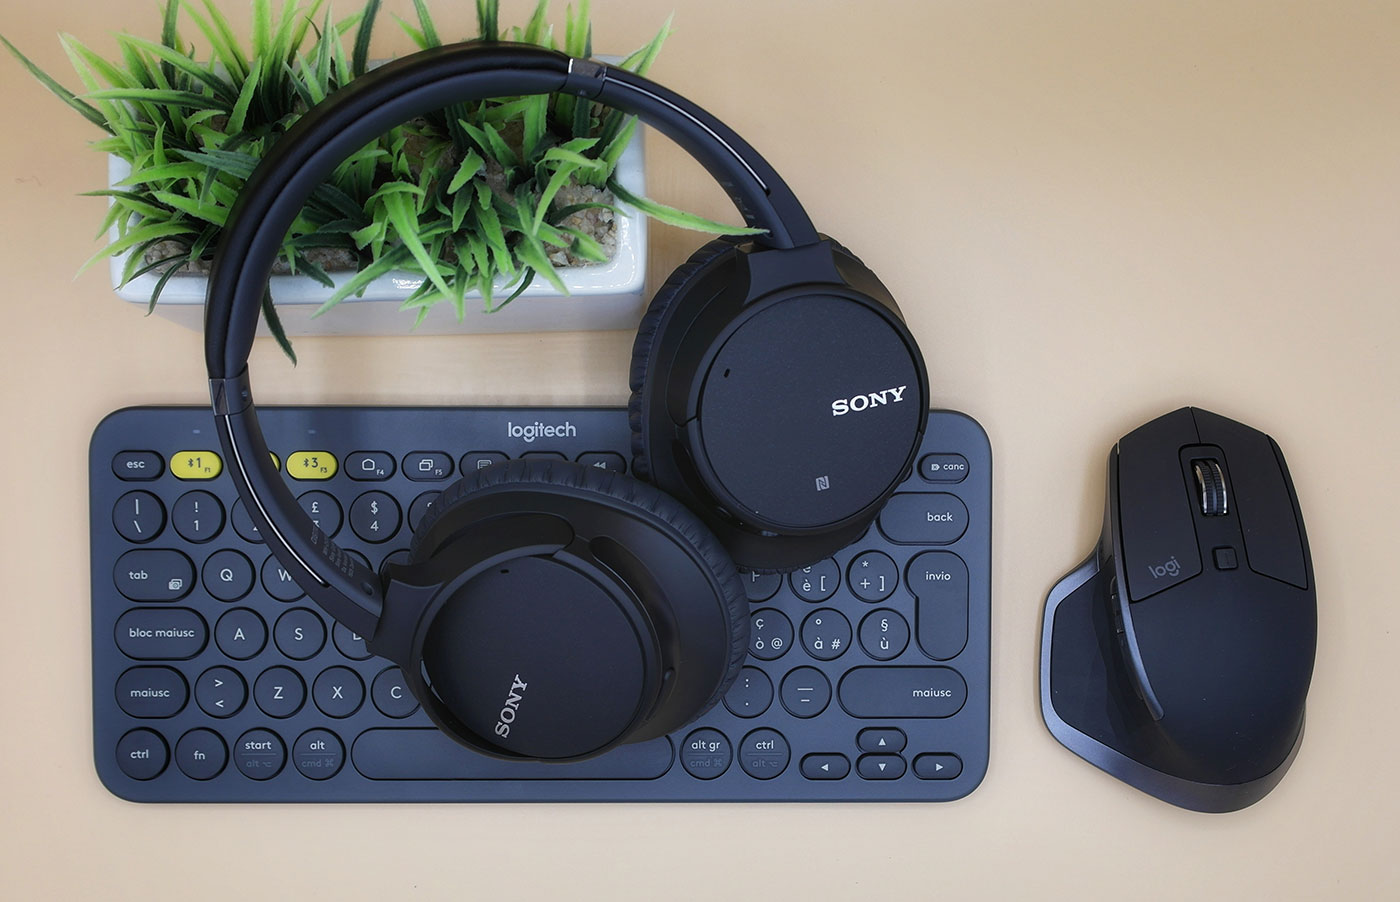 Purchasing-Electronics: a pair of headphones has been positioned on top of a keyboard and next to a mouse. In the picture, a green plant in a pot is also featured.